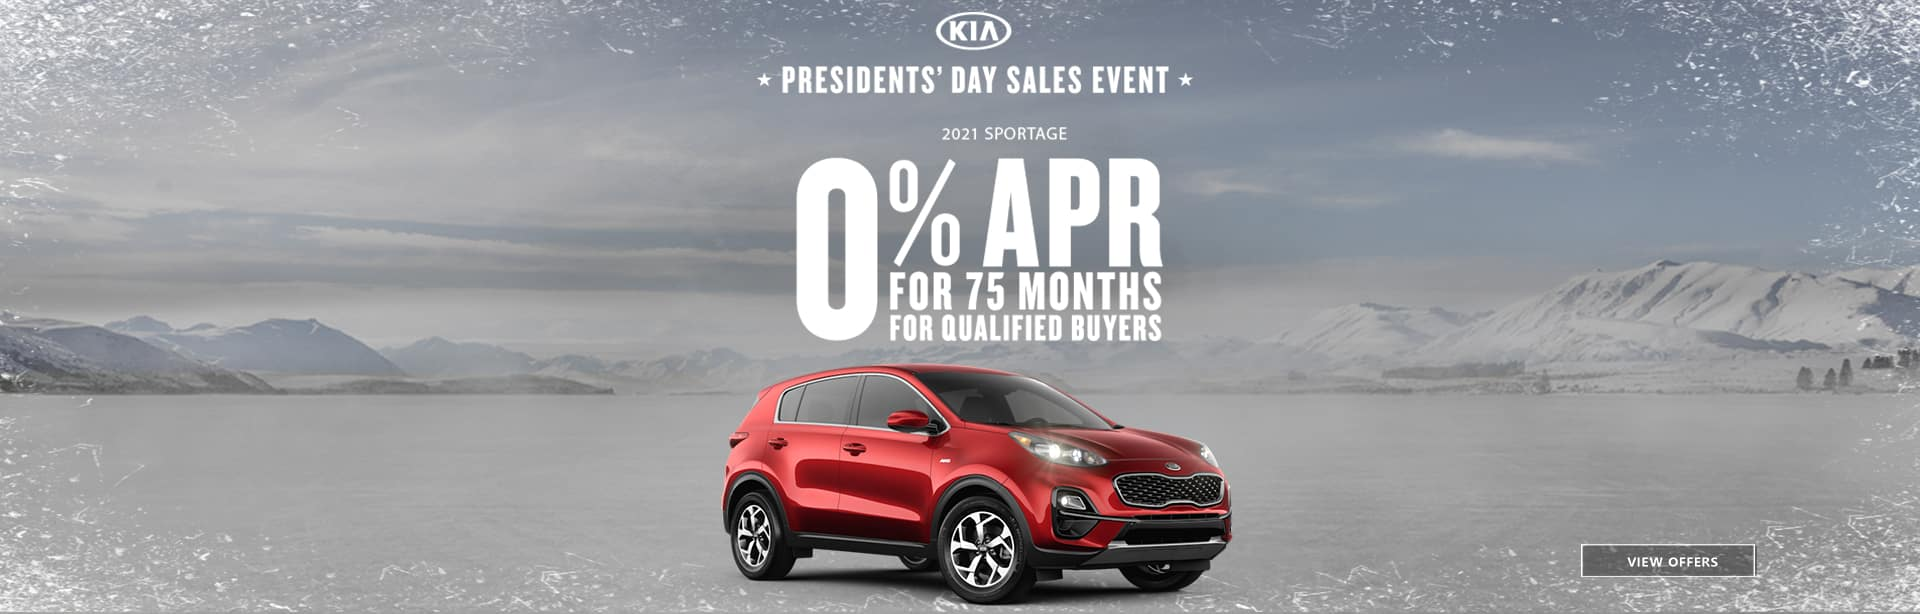 18669_Presidents_Day_Sales_Event_2021_Sportage_1920x614